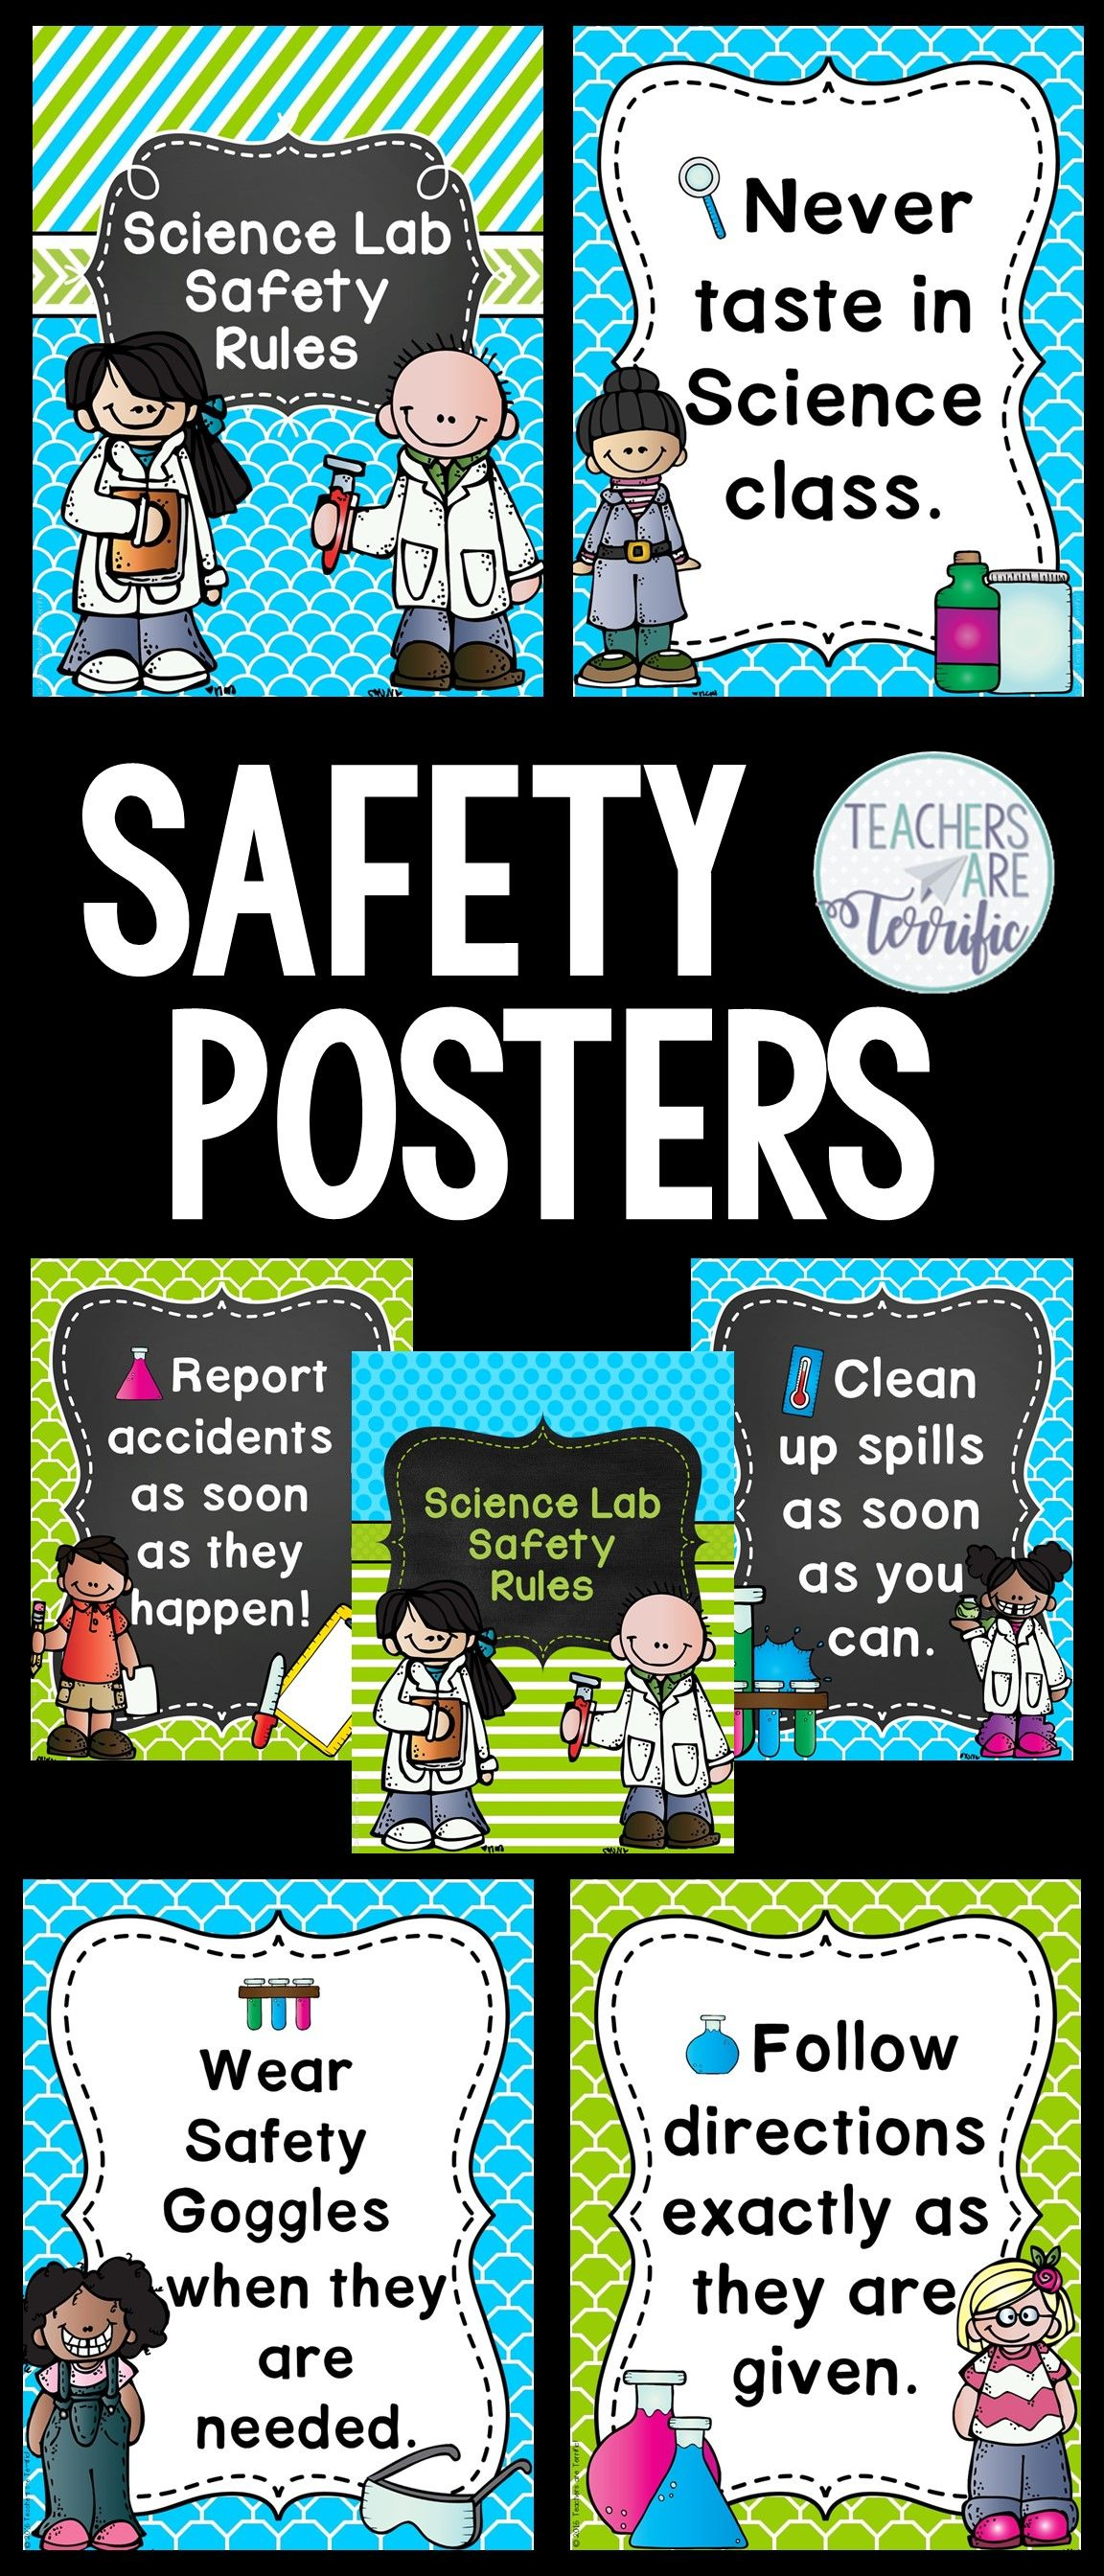 Science Safety Rules Posters In Lime And Bright Turquoise